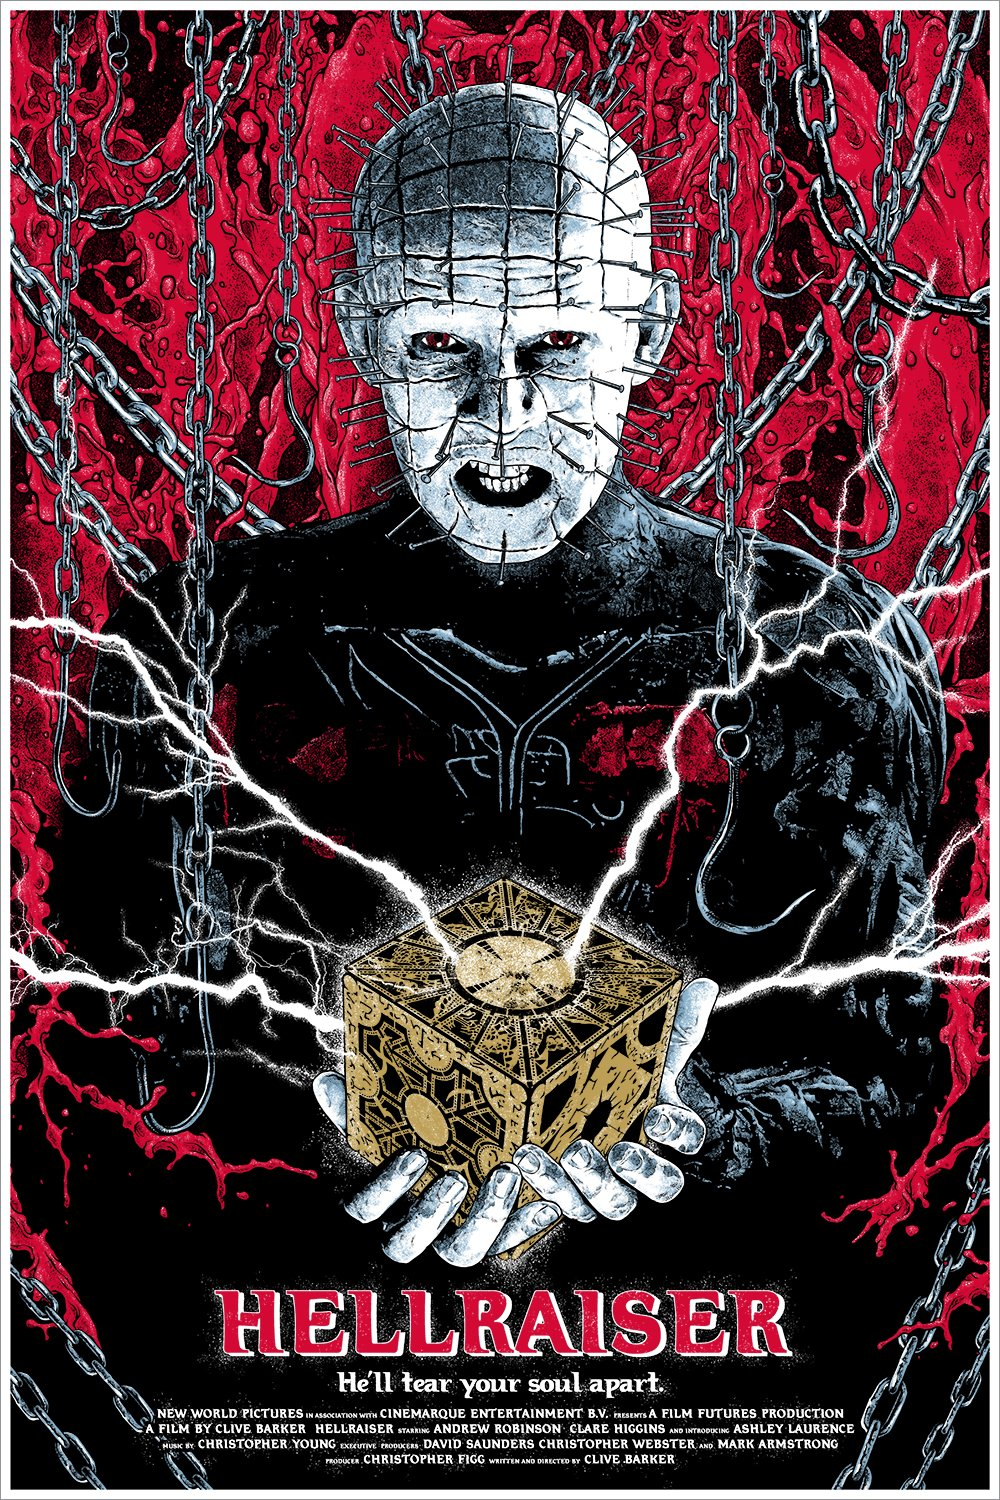 Hellraiser Finds New Director And Writers To Reboot Horrifying Franchise - The Illuminerdi